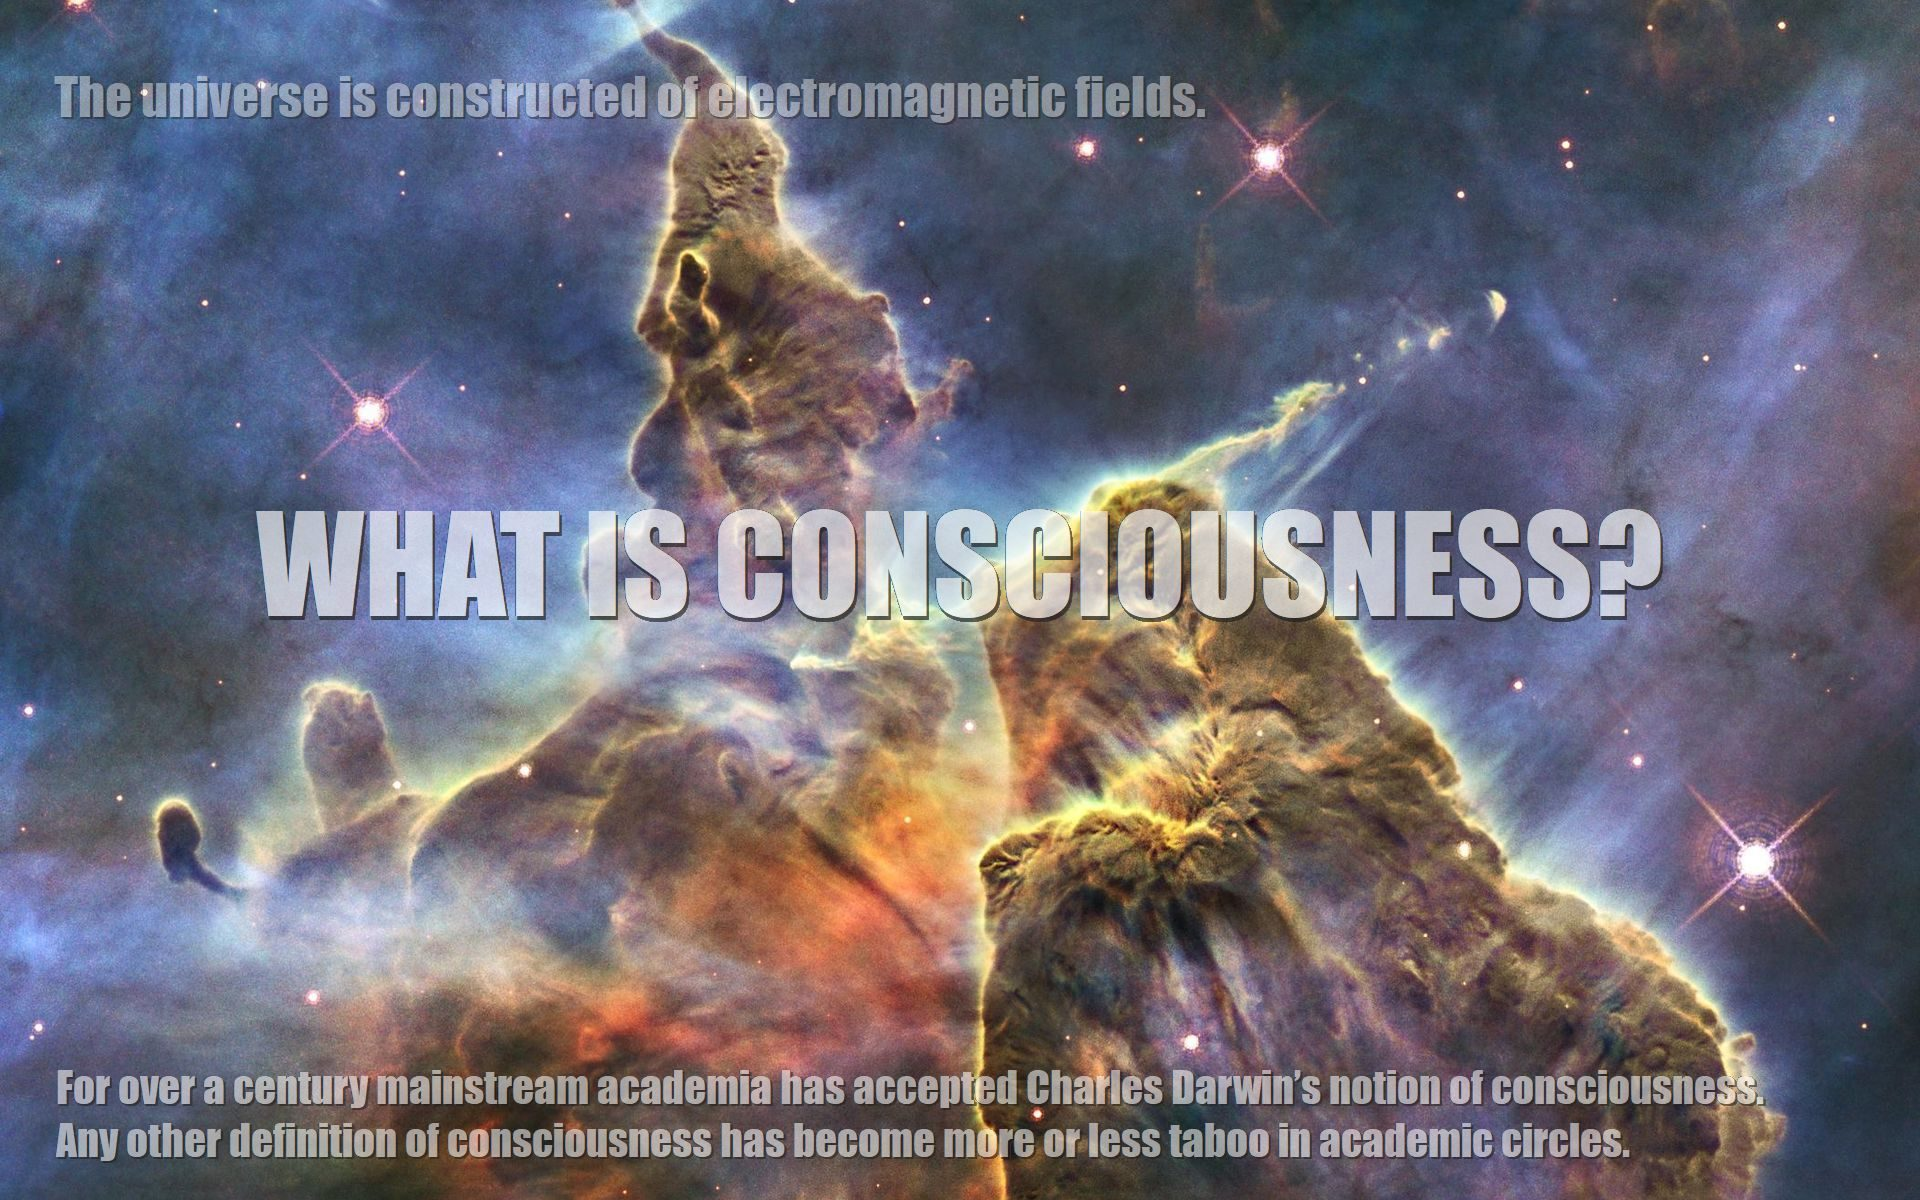 what-is-consciousness-conscious-mind-made-of-electromagnetic-energy-fields-quantum-waves-1920